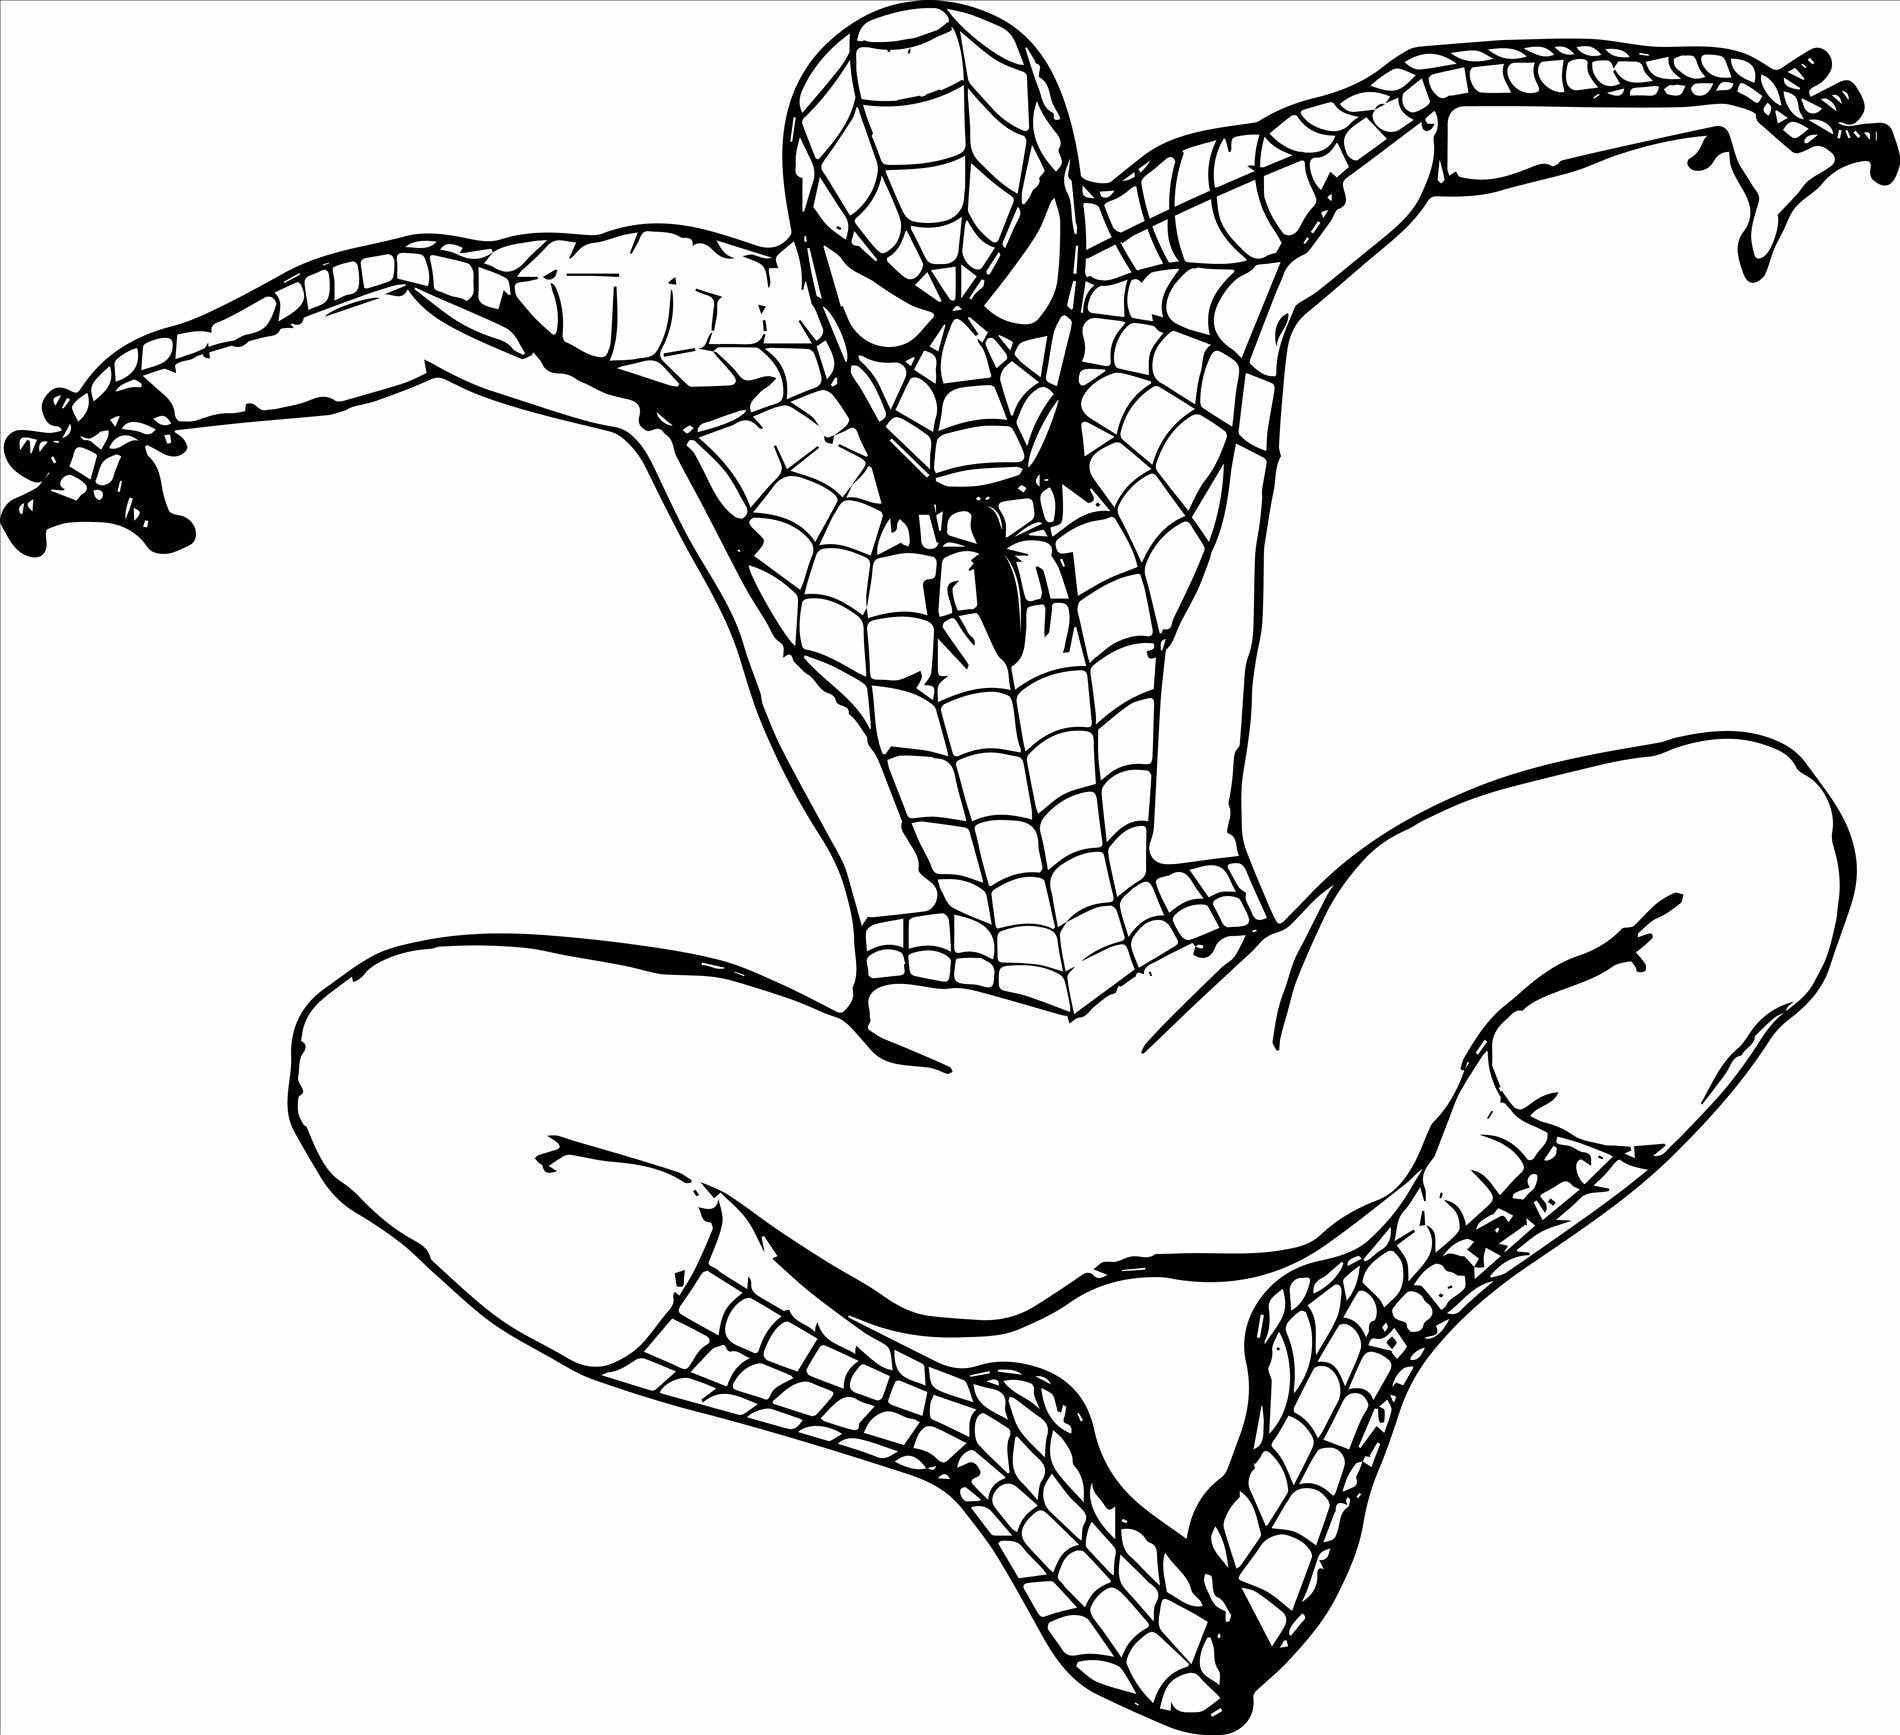 Spiderman Christmas Coloring Pages Superhero Coloring Pages Superhero Coloring Spiderman Coloring